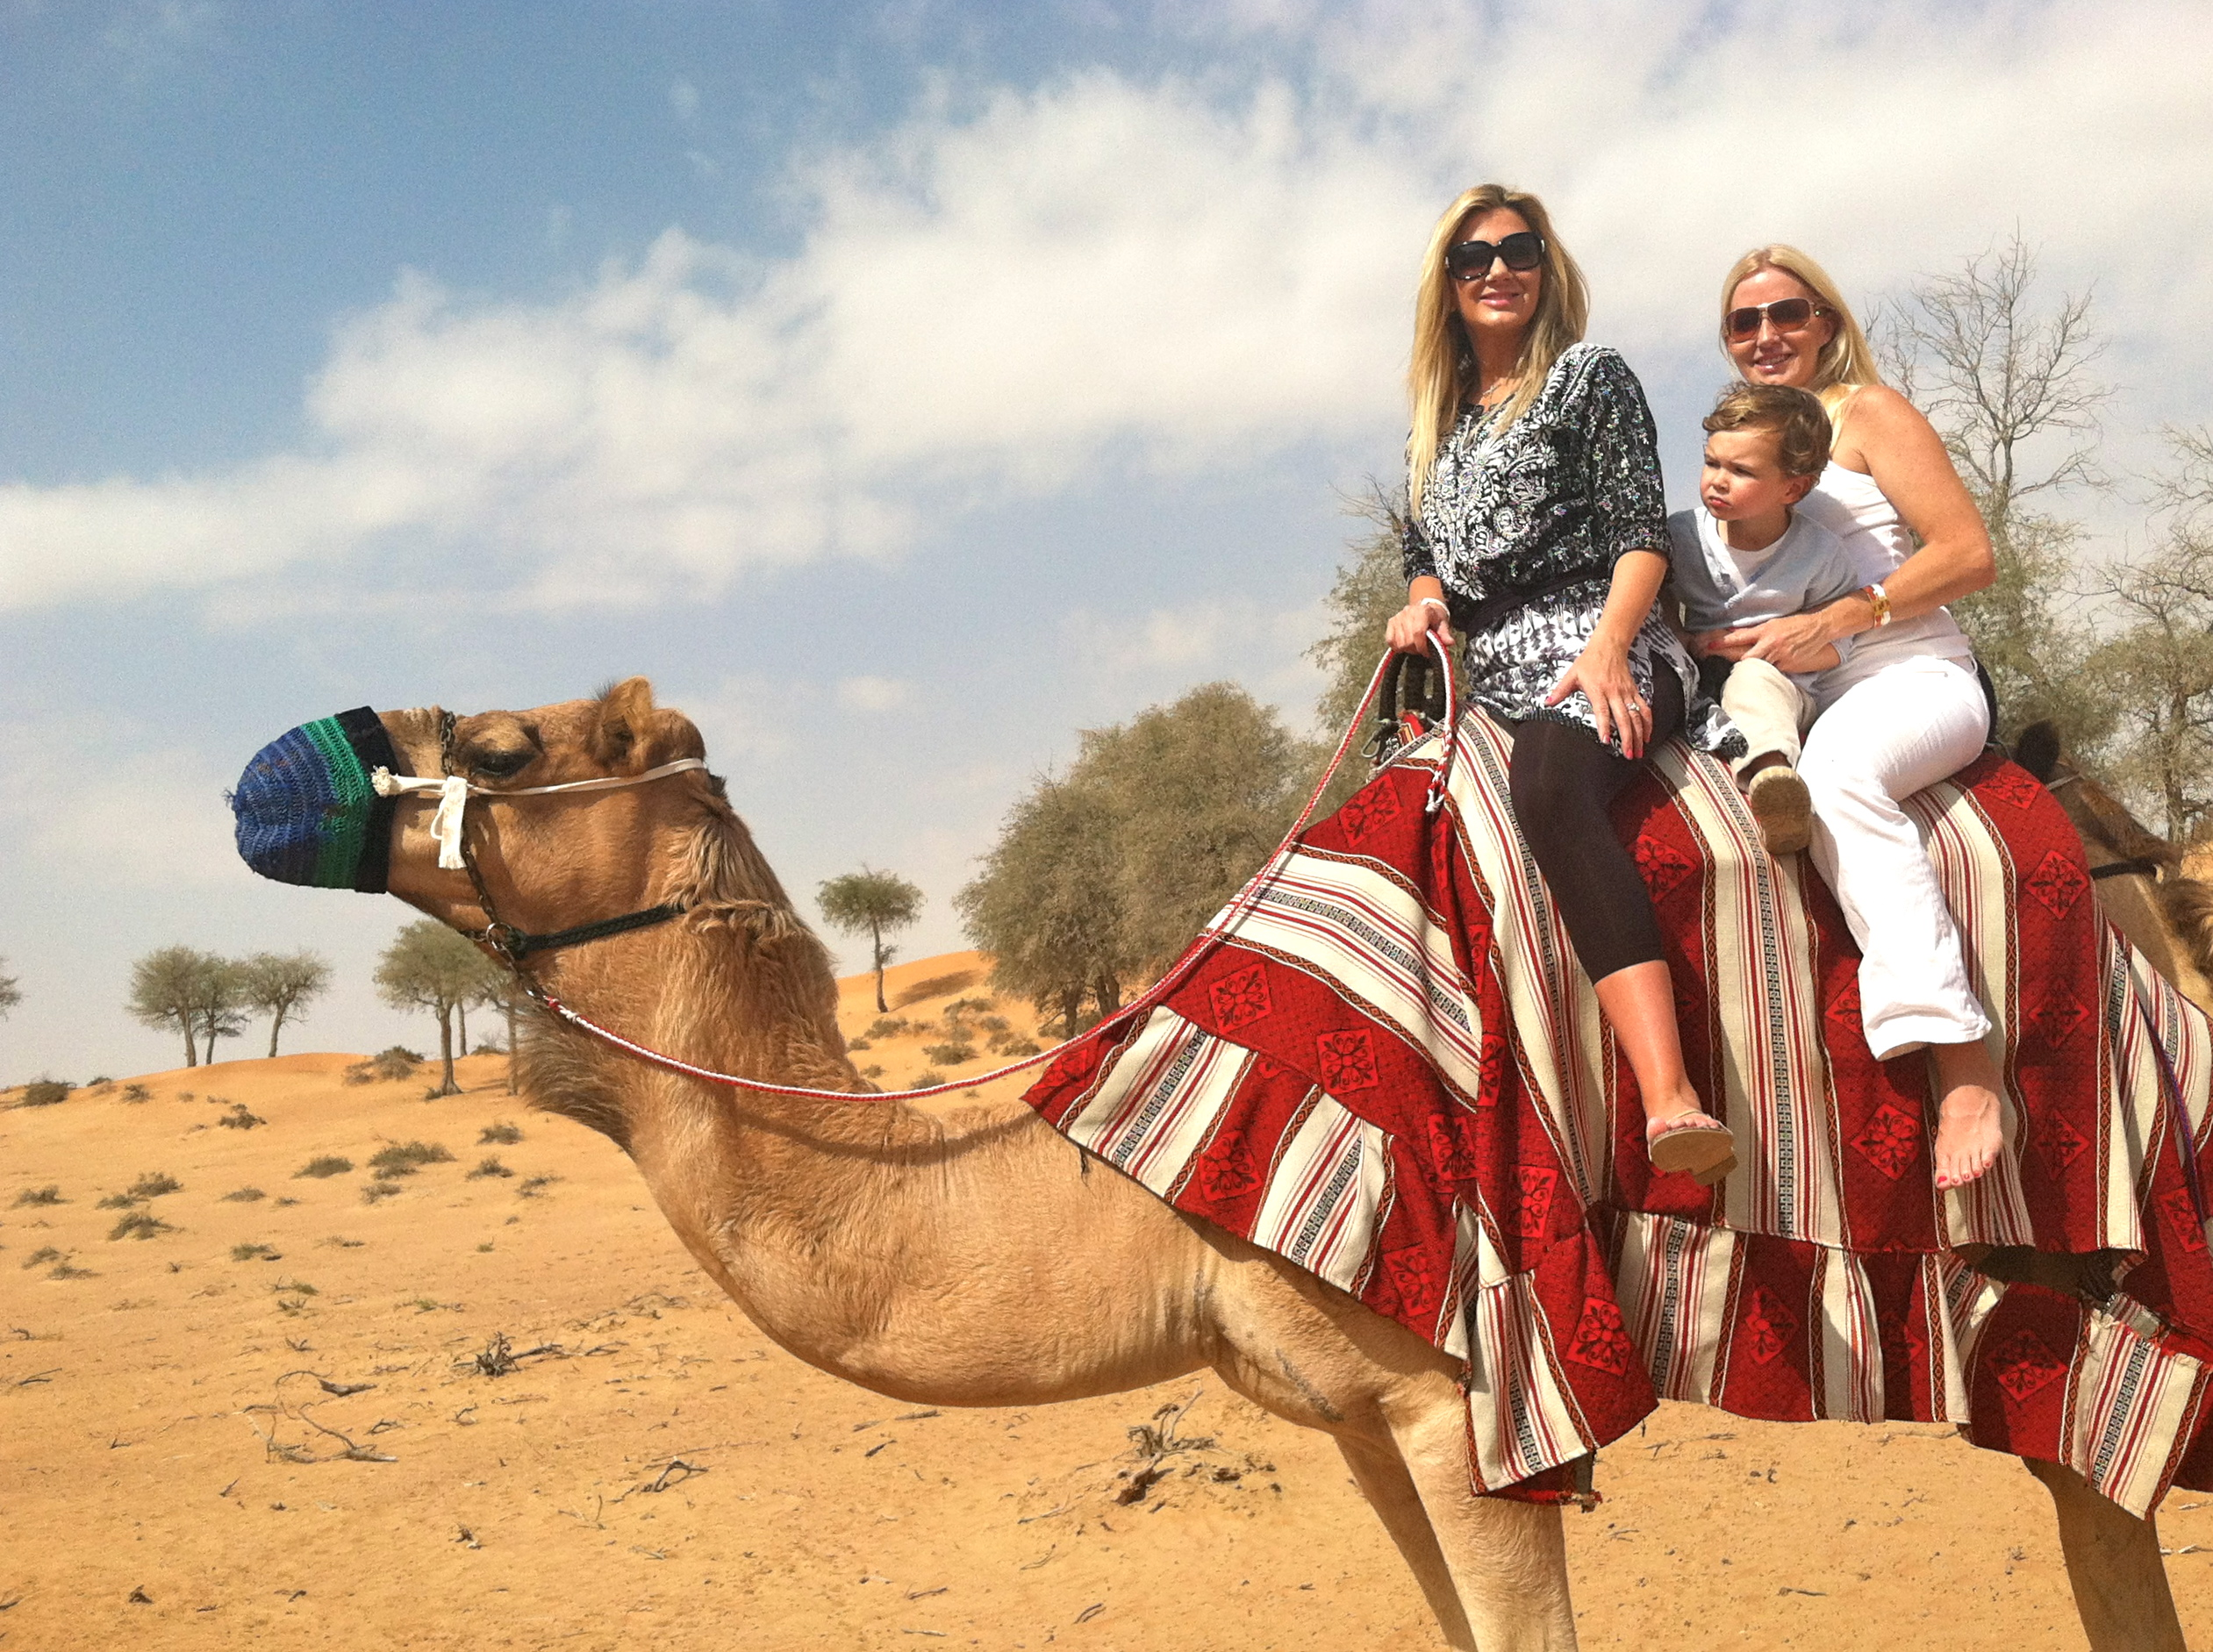 Morning camel ride with my sister Kim and my godson!